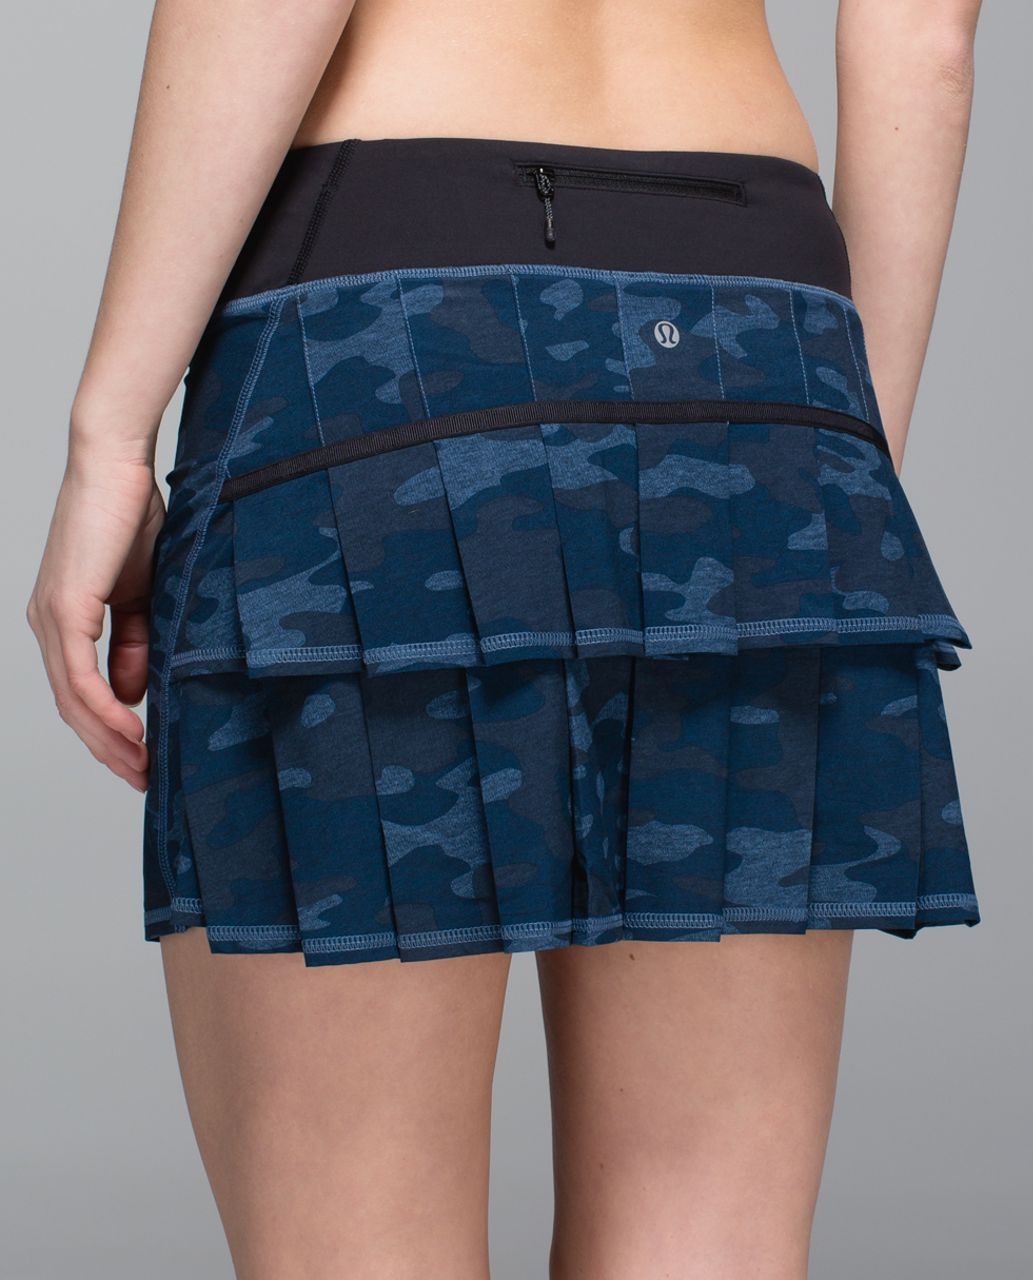 Lululemon Run:  Pace Setter Skirt *4-way Stretch (Tall) - Heathered Texture Lotus Camo Oil Slick Blue / Black